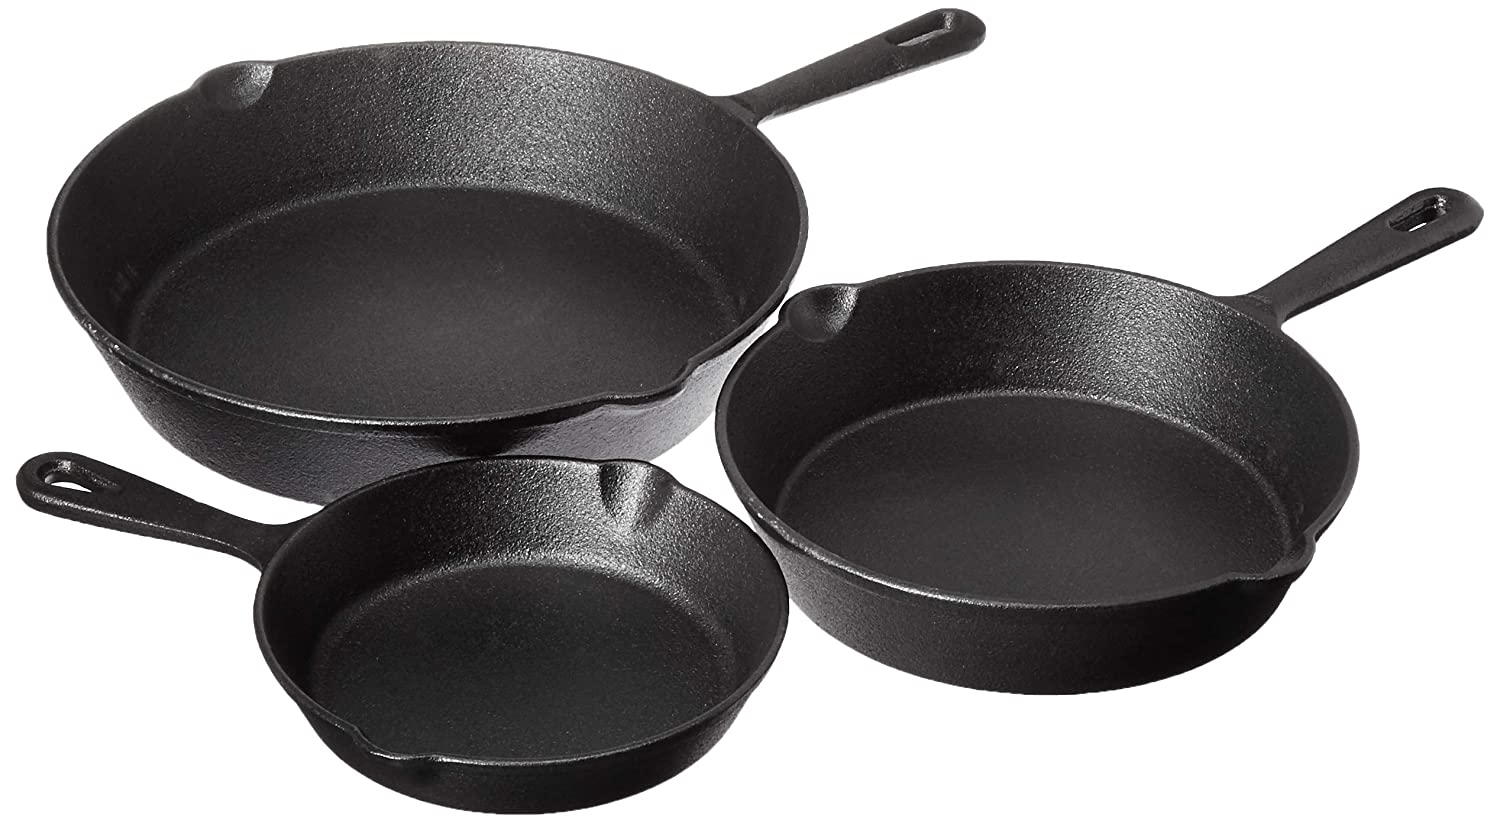 "Jim Beam Set of 3 Pre Seasoned Cast Iron Skillets with Even Heat Distribution and Heat Retention - 6"" 8"" 10"""